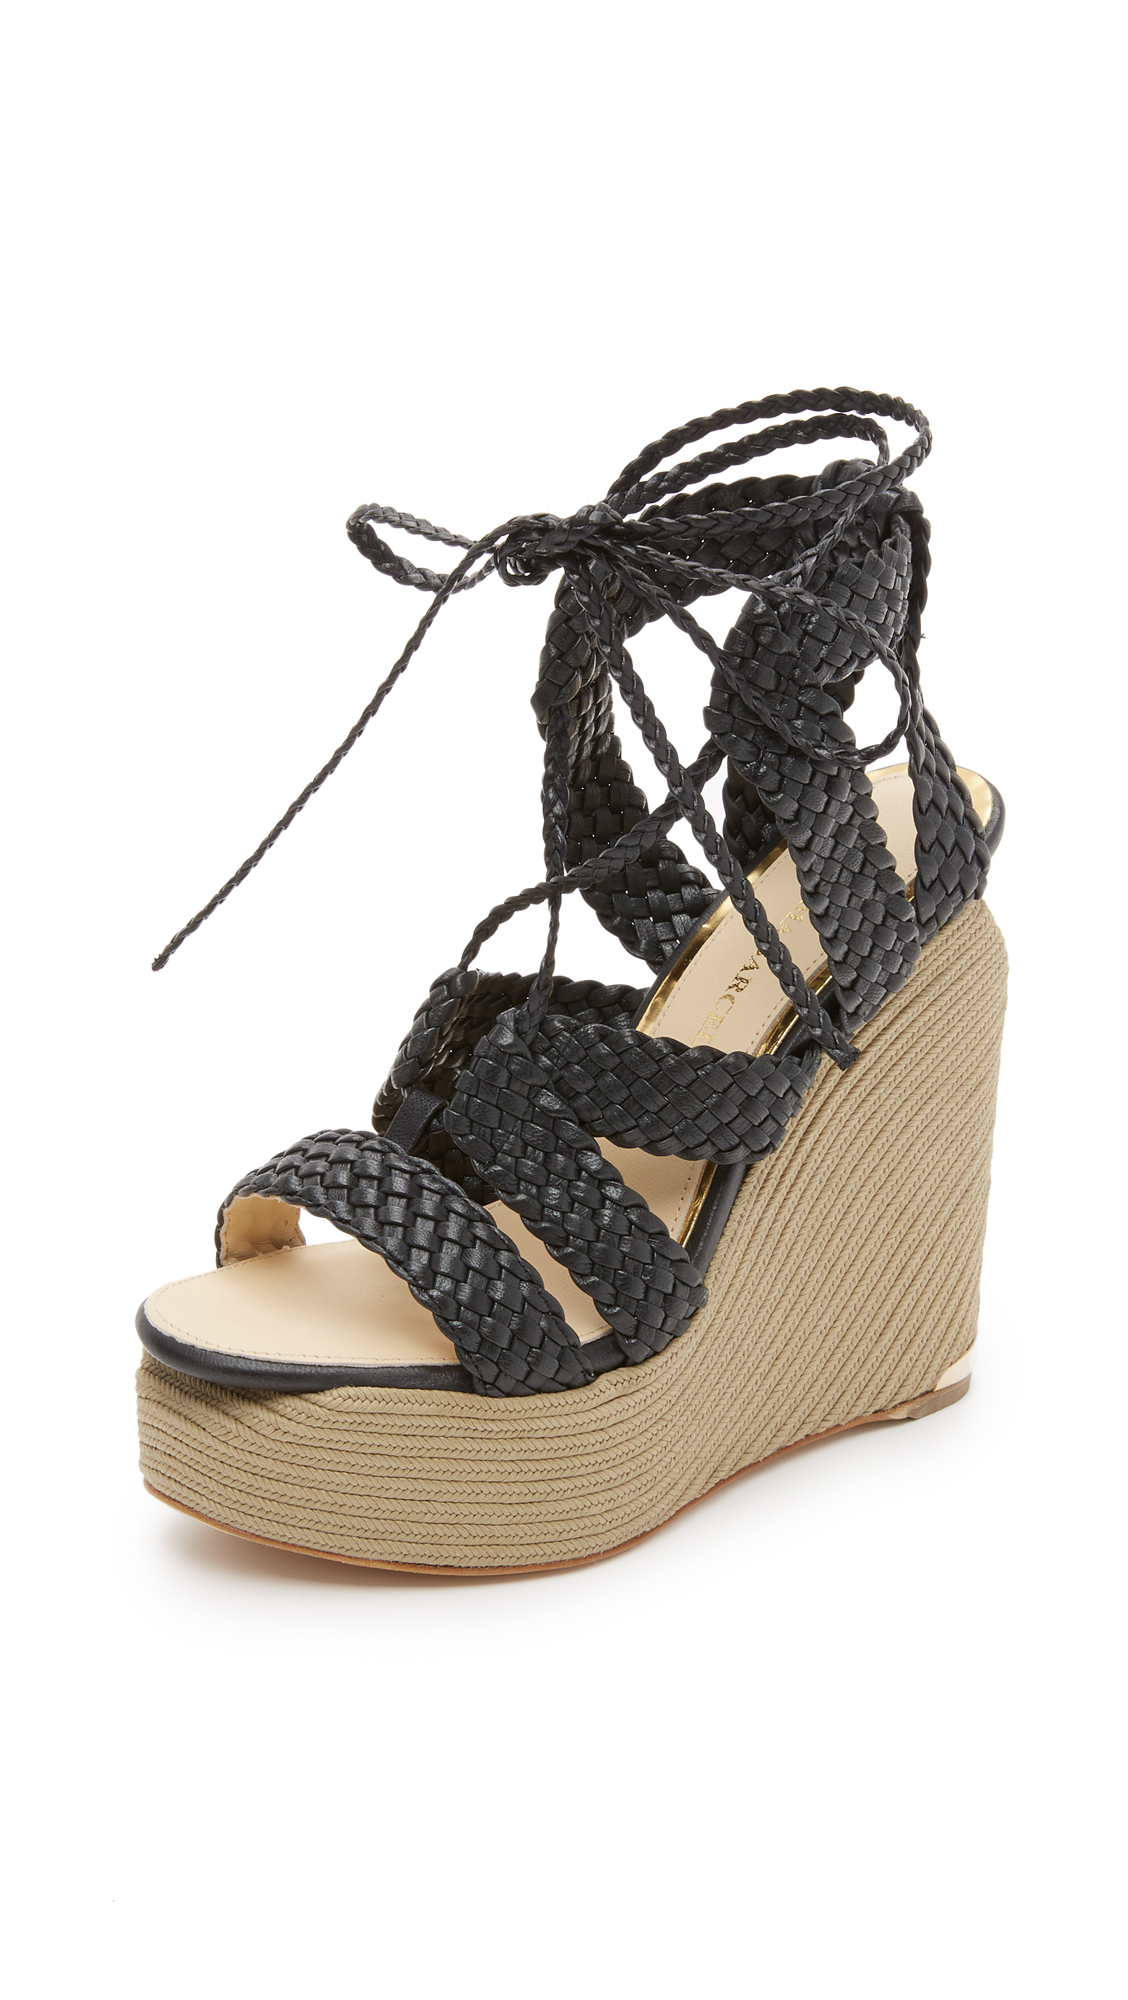 Shopbop has the looks you crave. Shop our expertly curated collection of luxe black lace wedges, and find the look you've been dreaming of. We have a serious obsession with these black lace wedges, and we bet you do too.